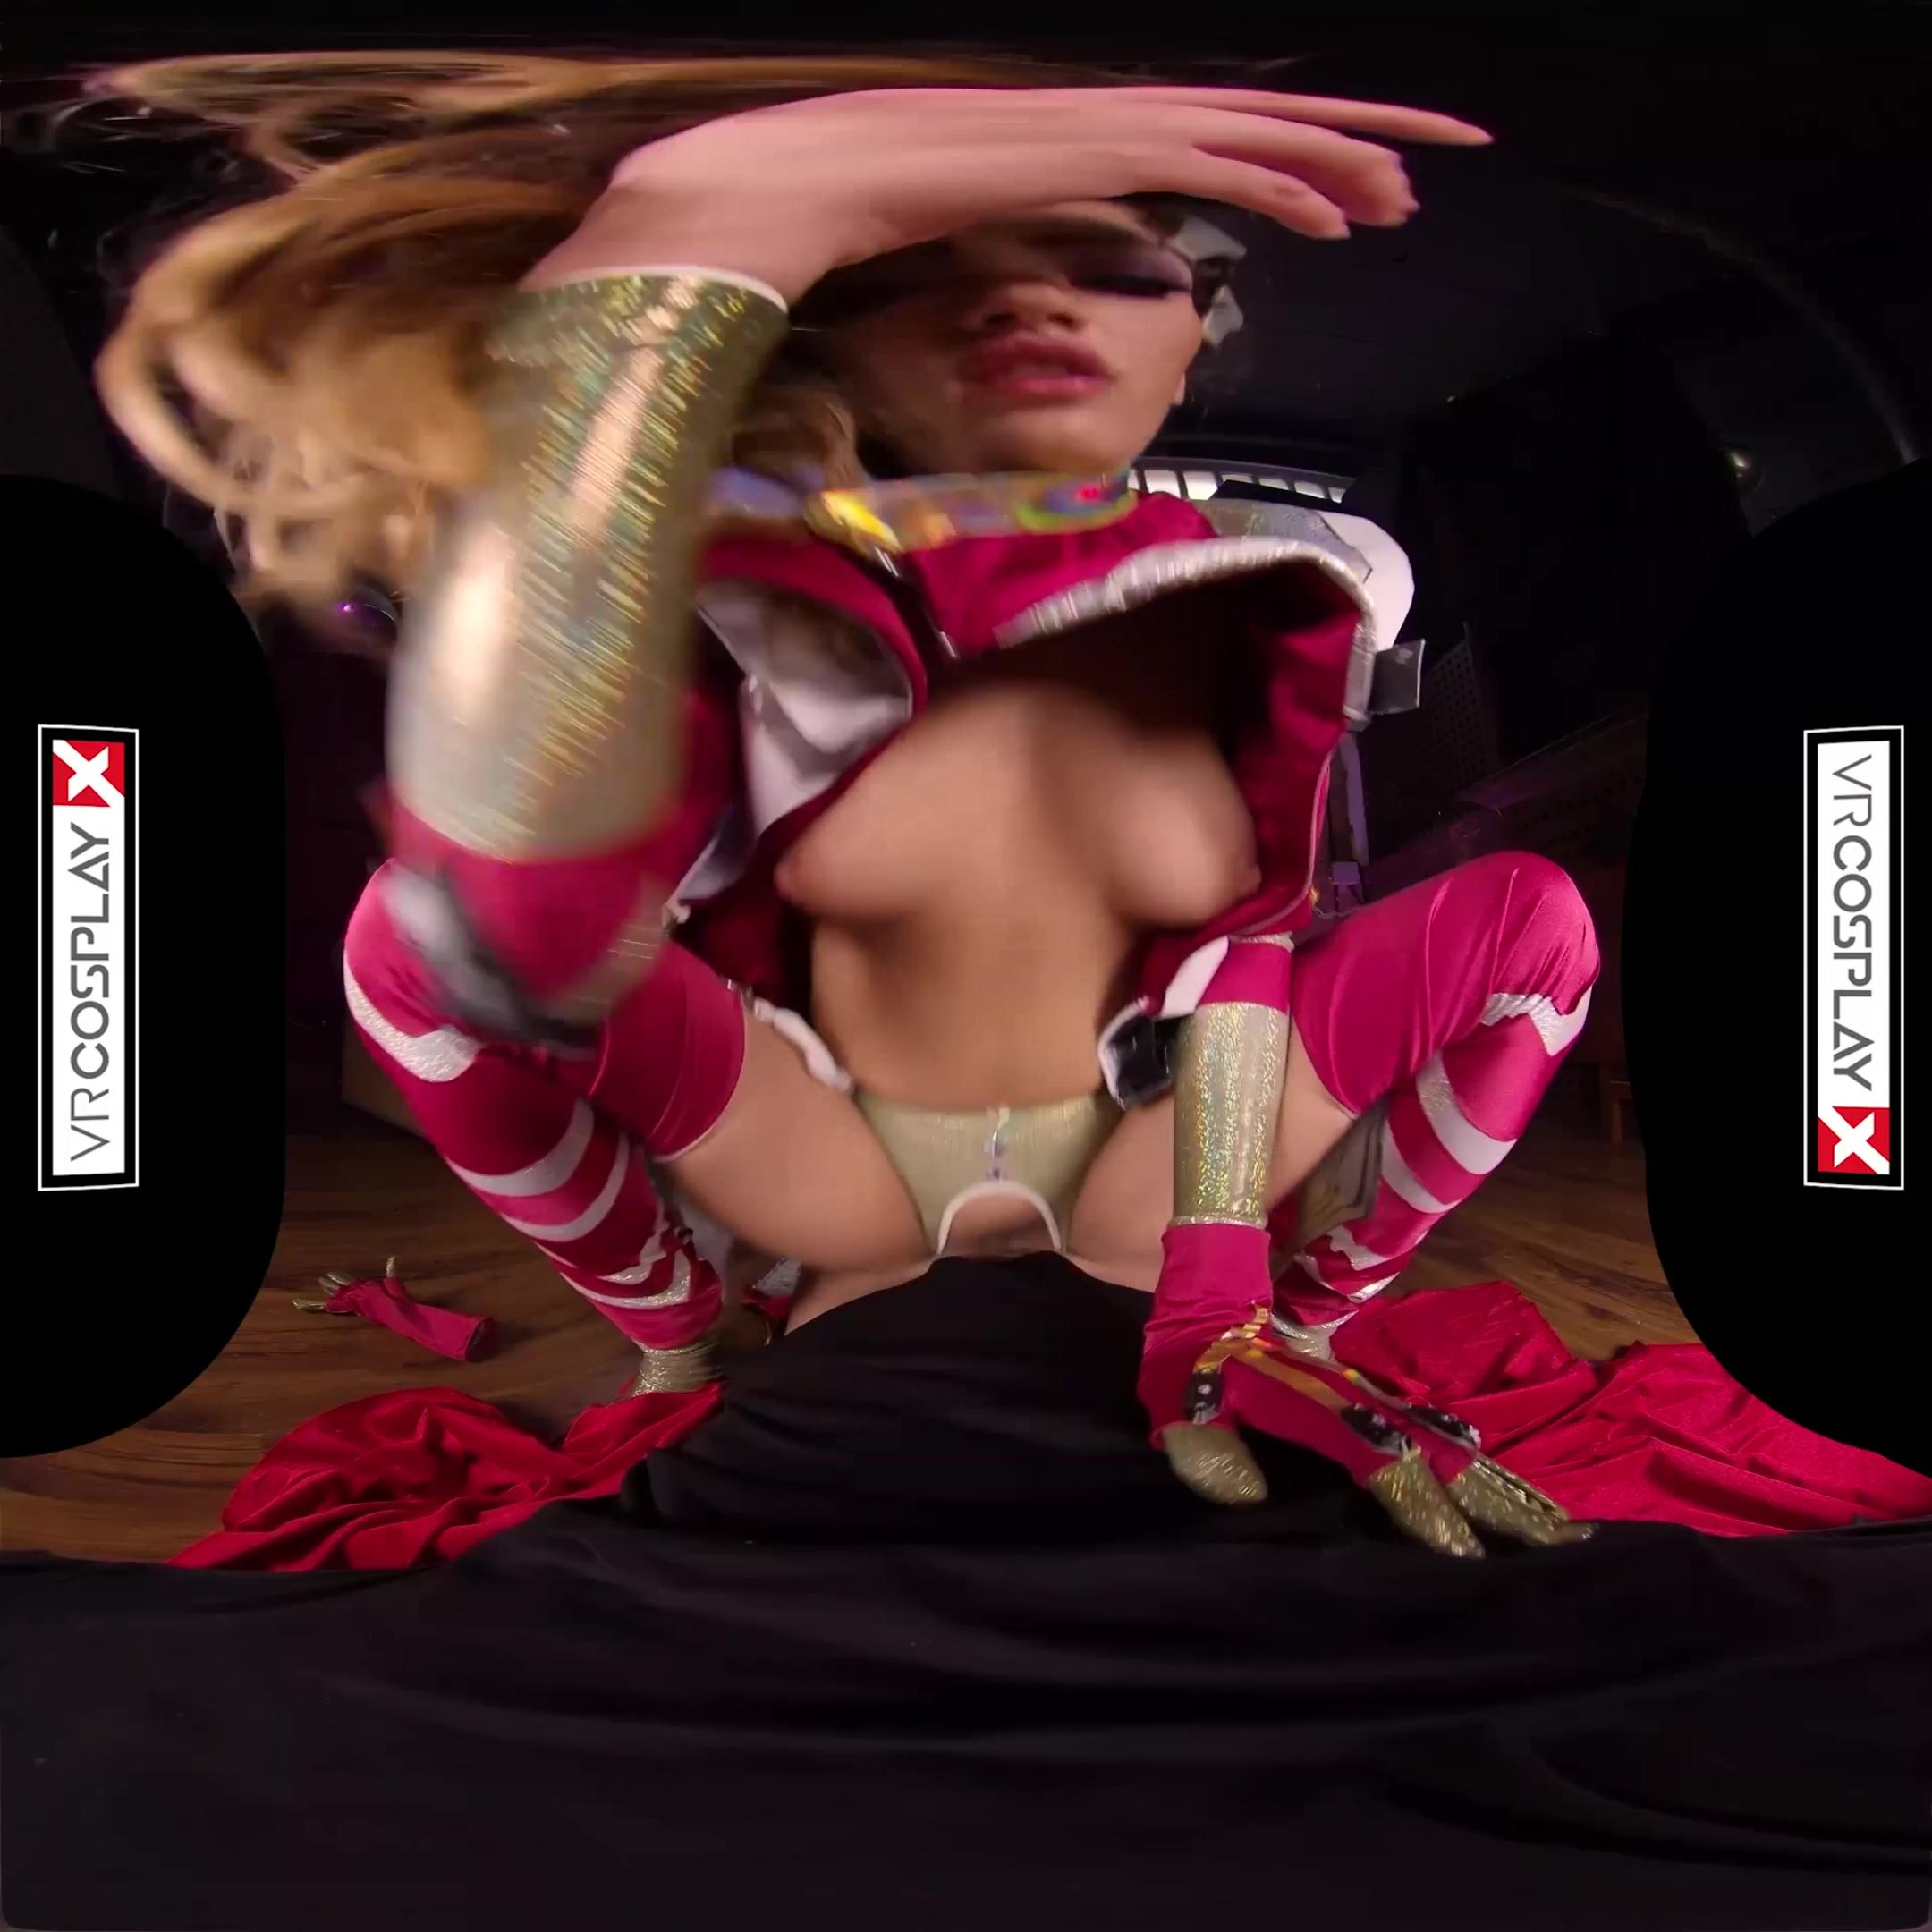 VRCosplayX Cosplay LATINA BABES Compilation In POV Virtual Reality Part 2